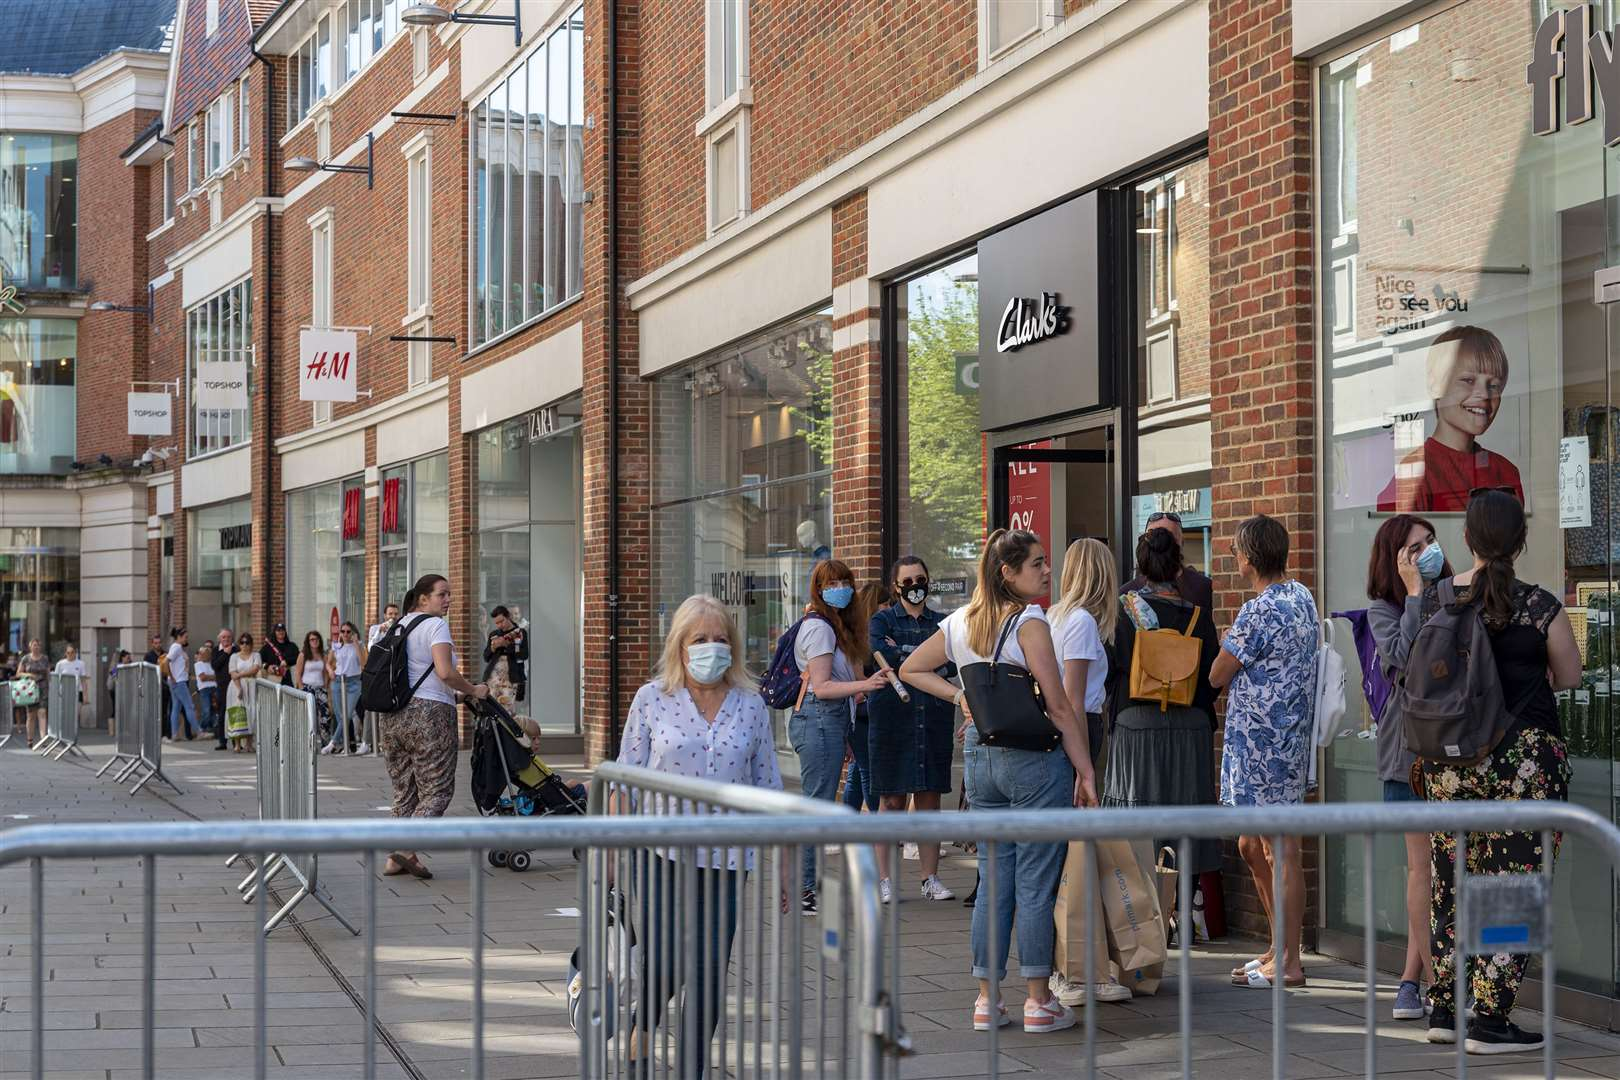 Queues in Whitefriars, Canterbury, while shops reopened after the coronavirus stopped. Image: Jo Court